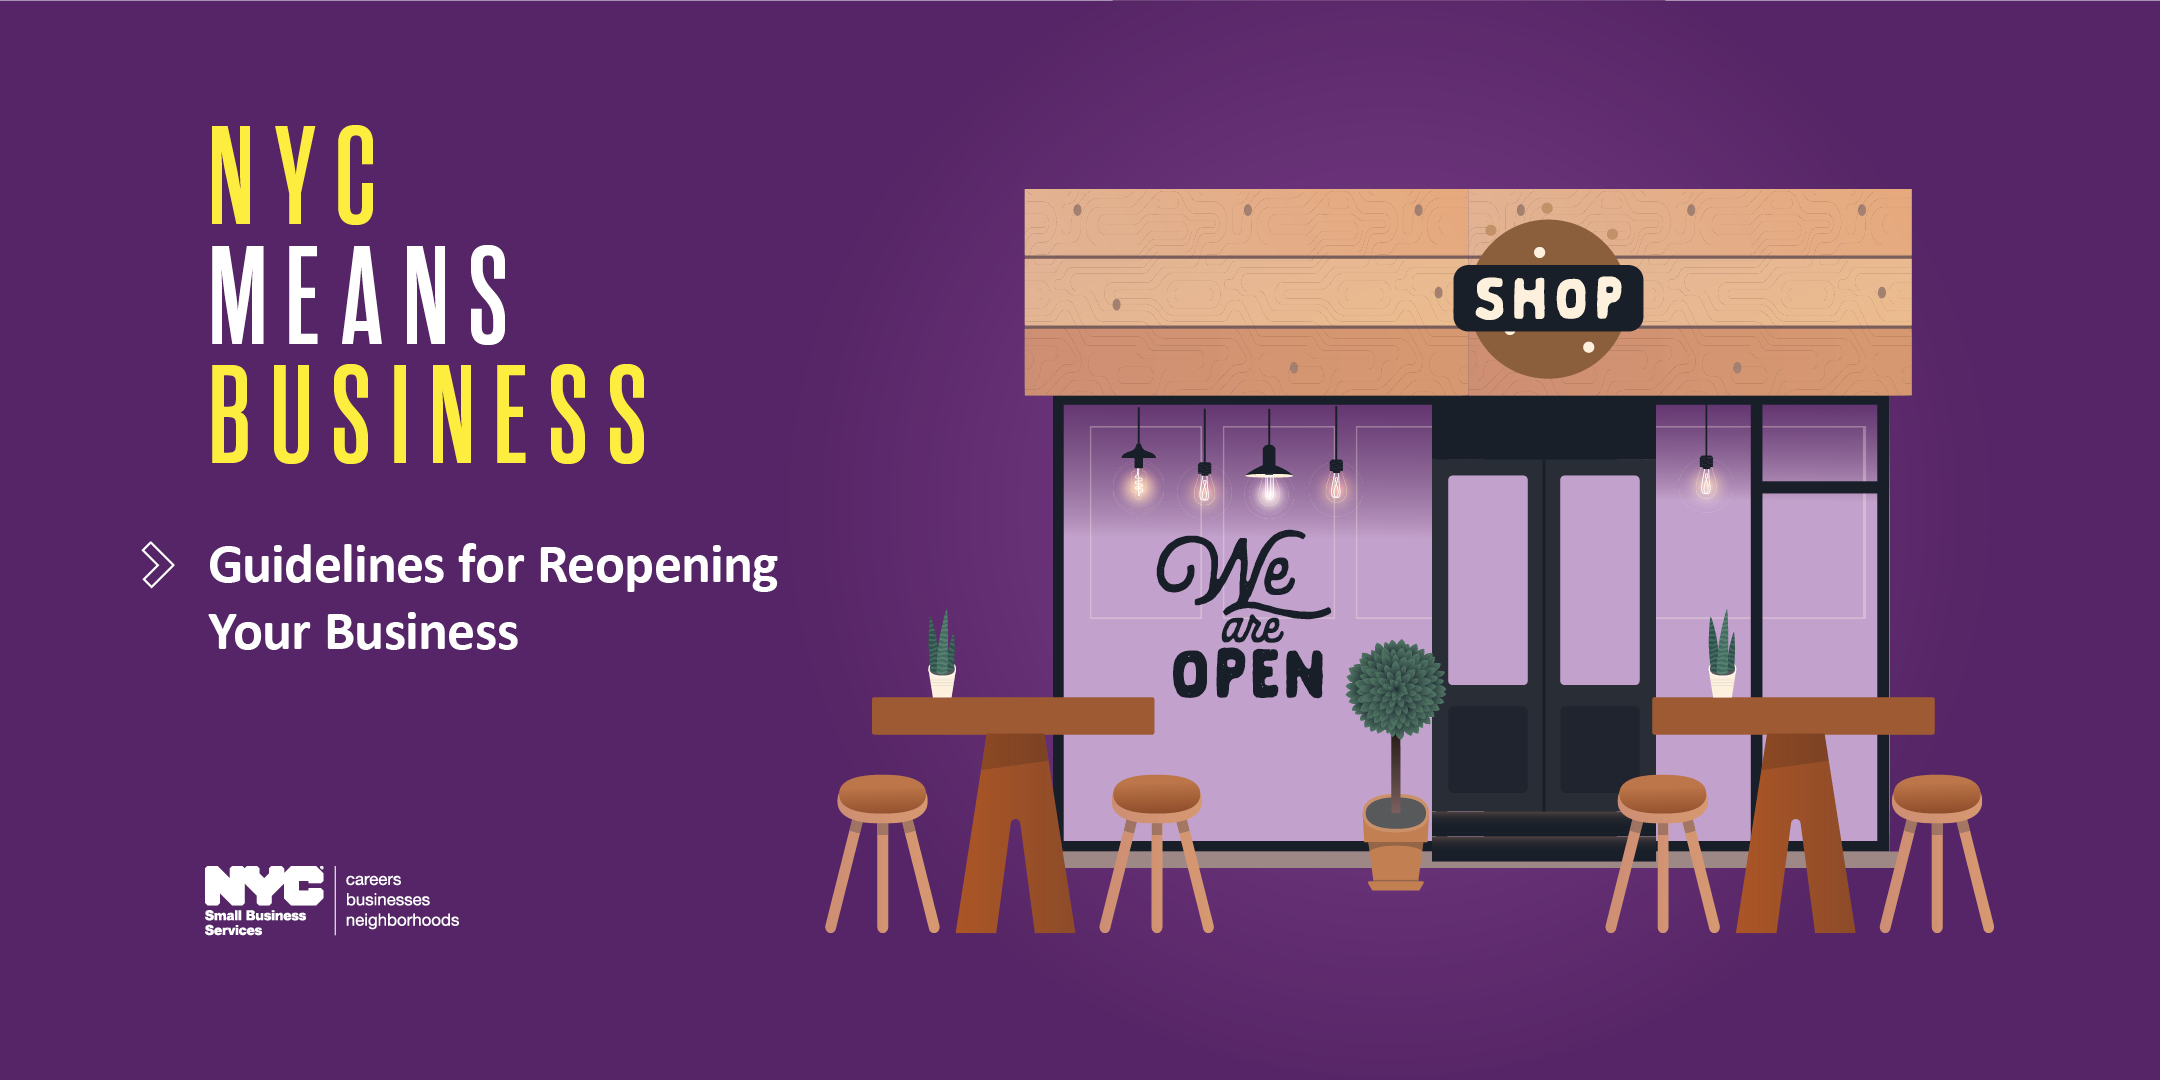 Storefront graphic with outdoor seating on a purple background with copy NYC Means Business > Guidelines for Reopening Your Business